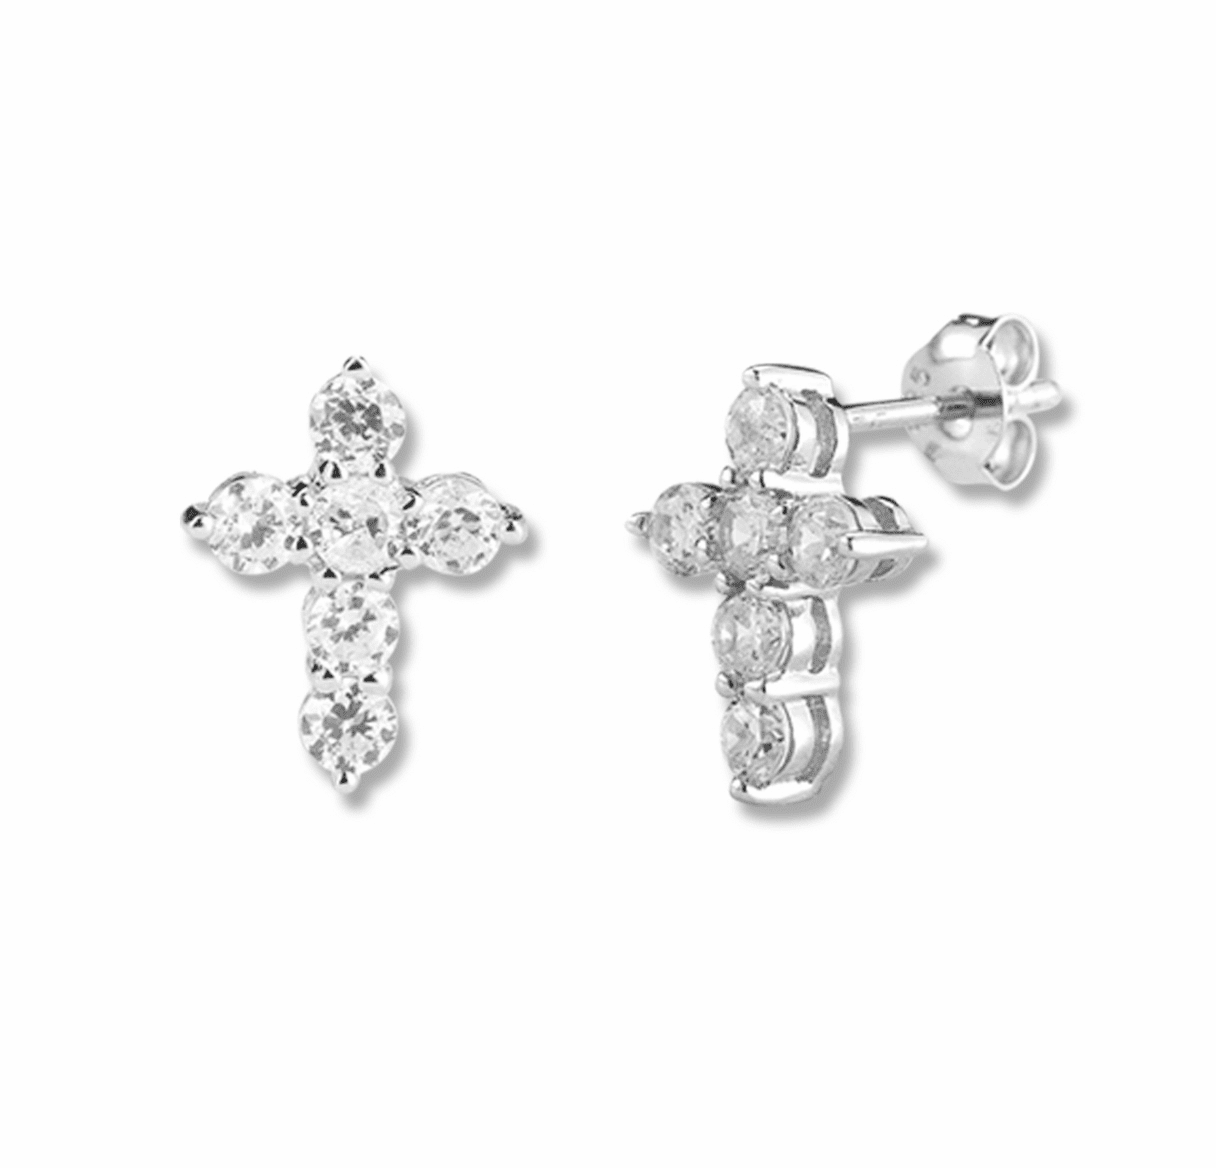 HMH Religious Cubic Zircons Crystal Cross Sterling Silver Earrings